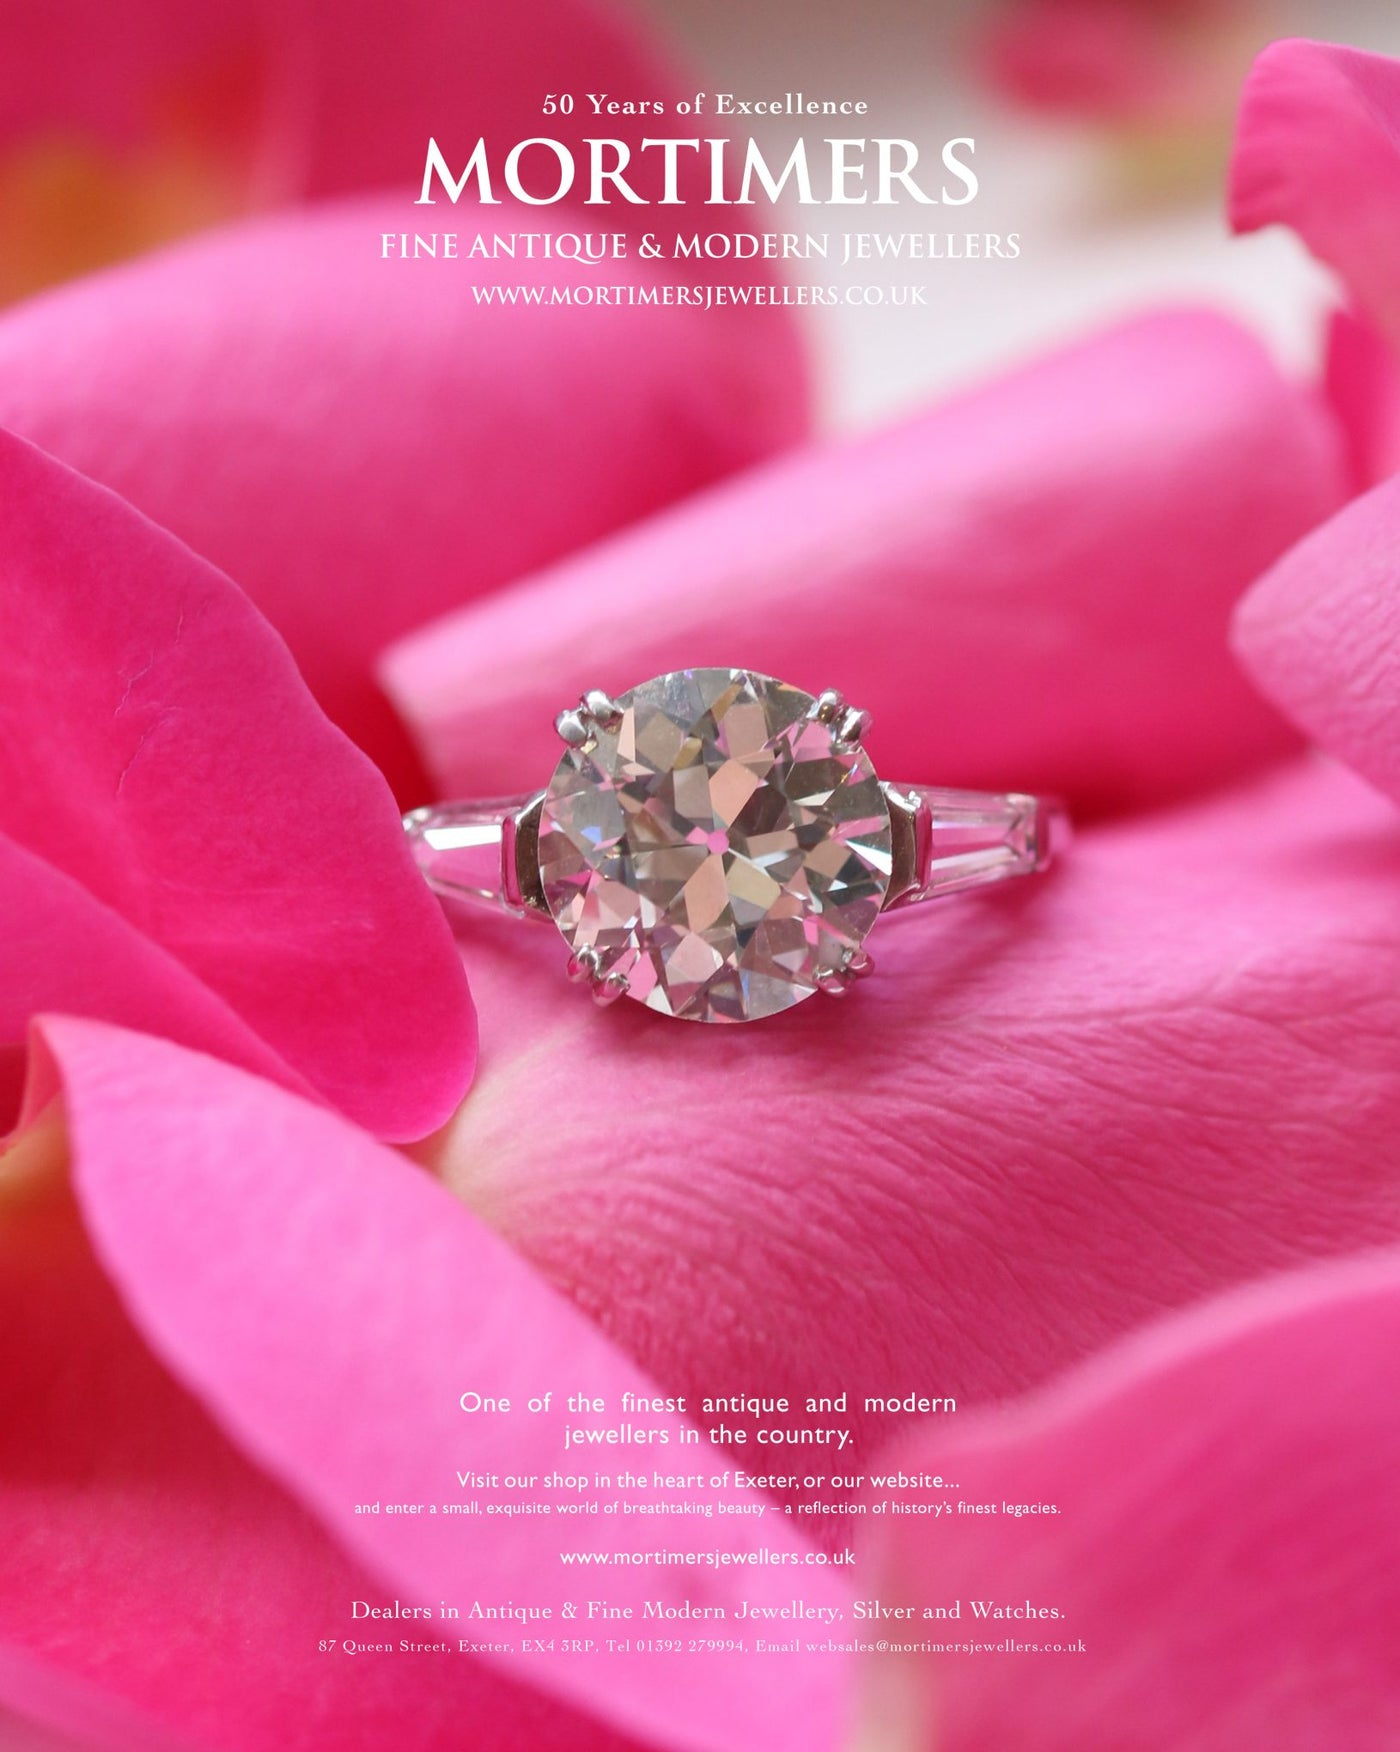 Latest Advert – Platinum Diamond Single Stone Ring with Baguette Cut Shoulders